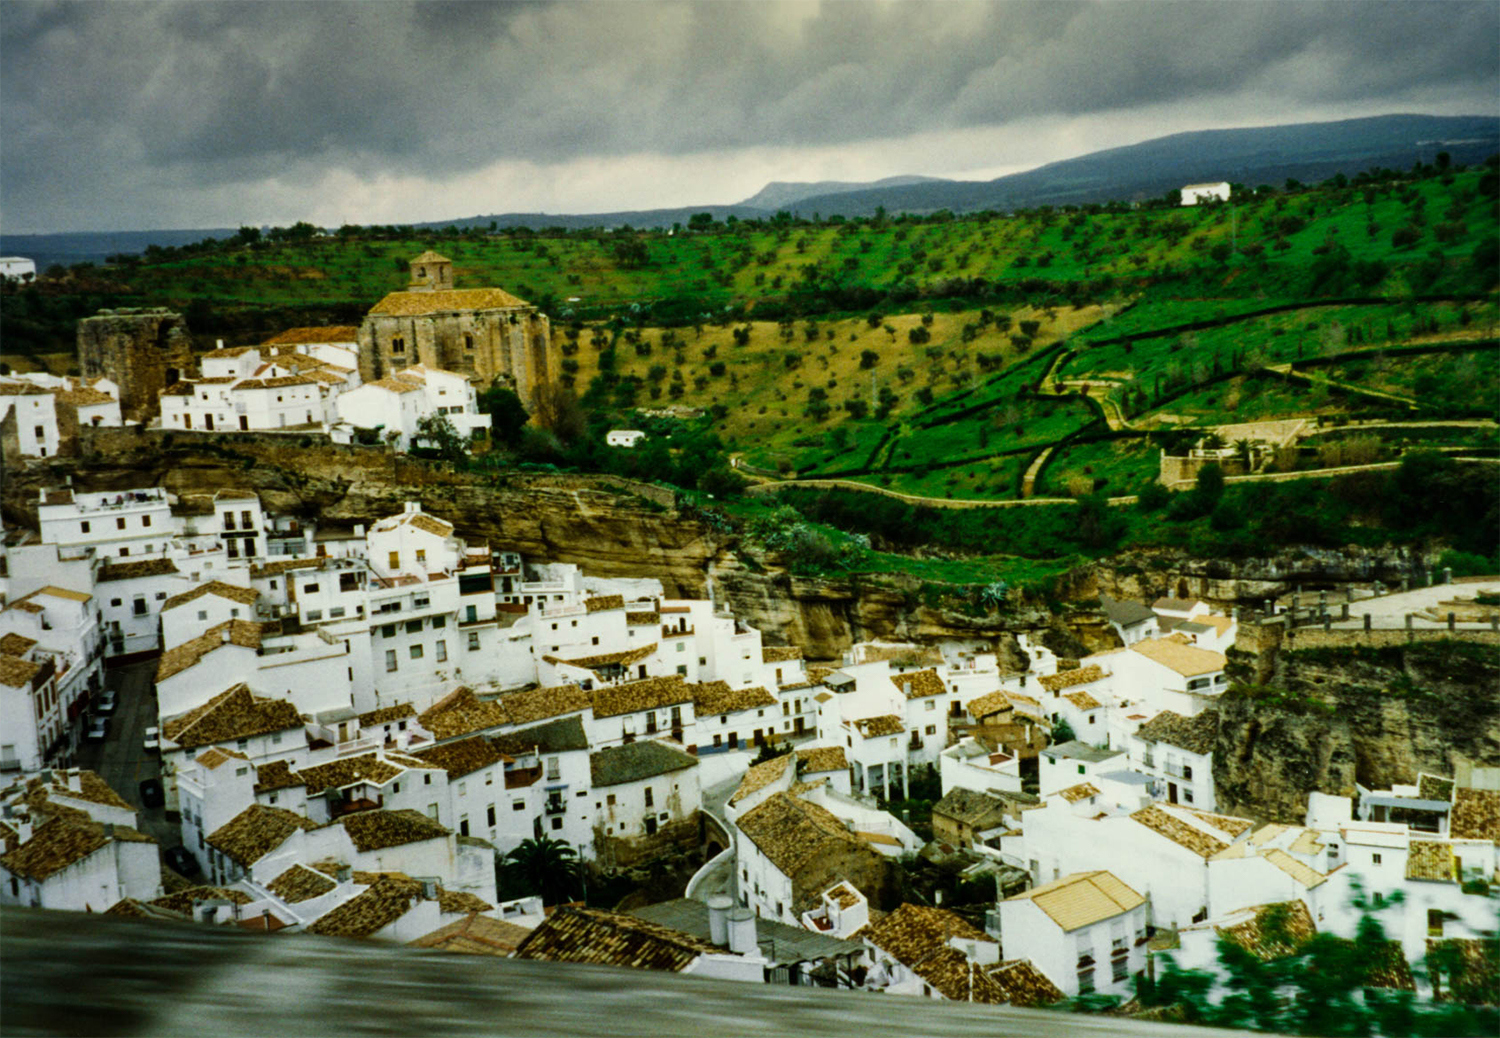 <p>A view over Setenil de las Bodegas, one of Andalusia's white hill towns. <br /></p>